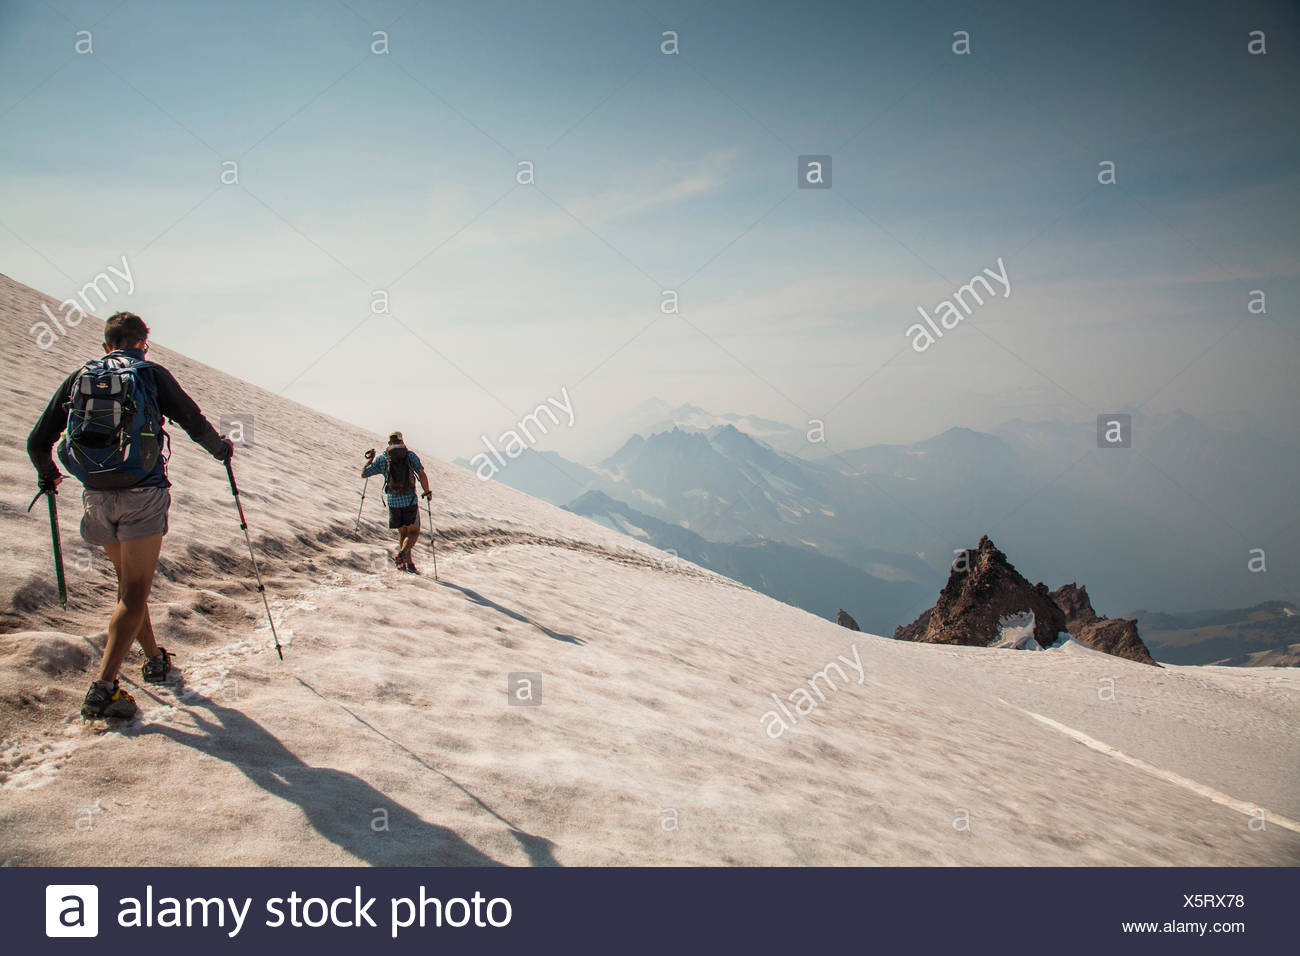 Two climbers descend a snowfield after climbing Glacier Peak in the Glacier Peak Wilderness in Washington. - Stock Image